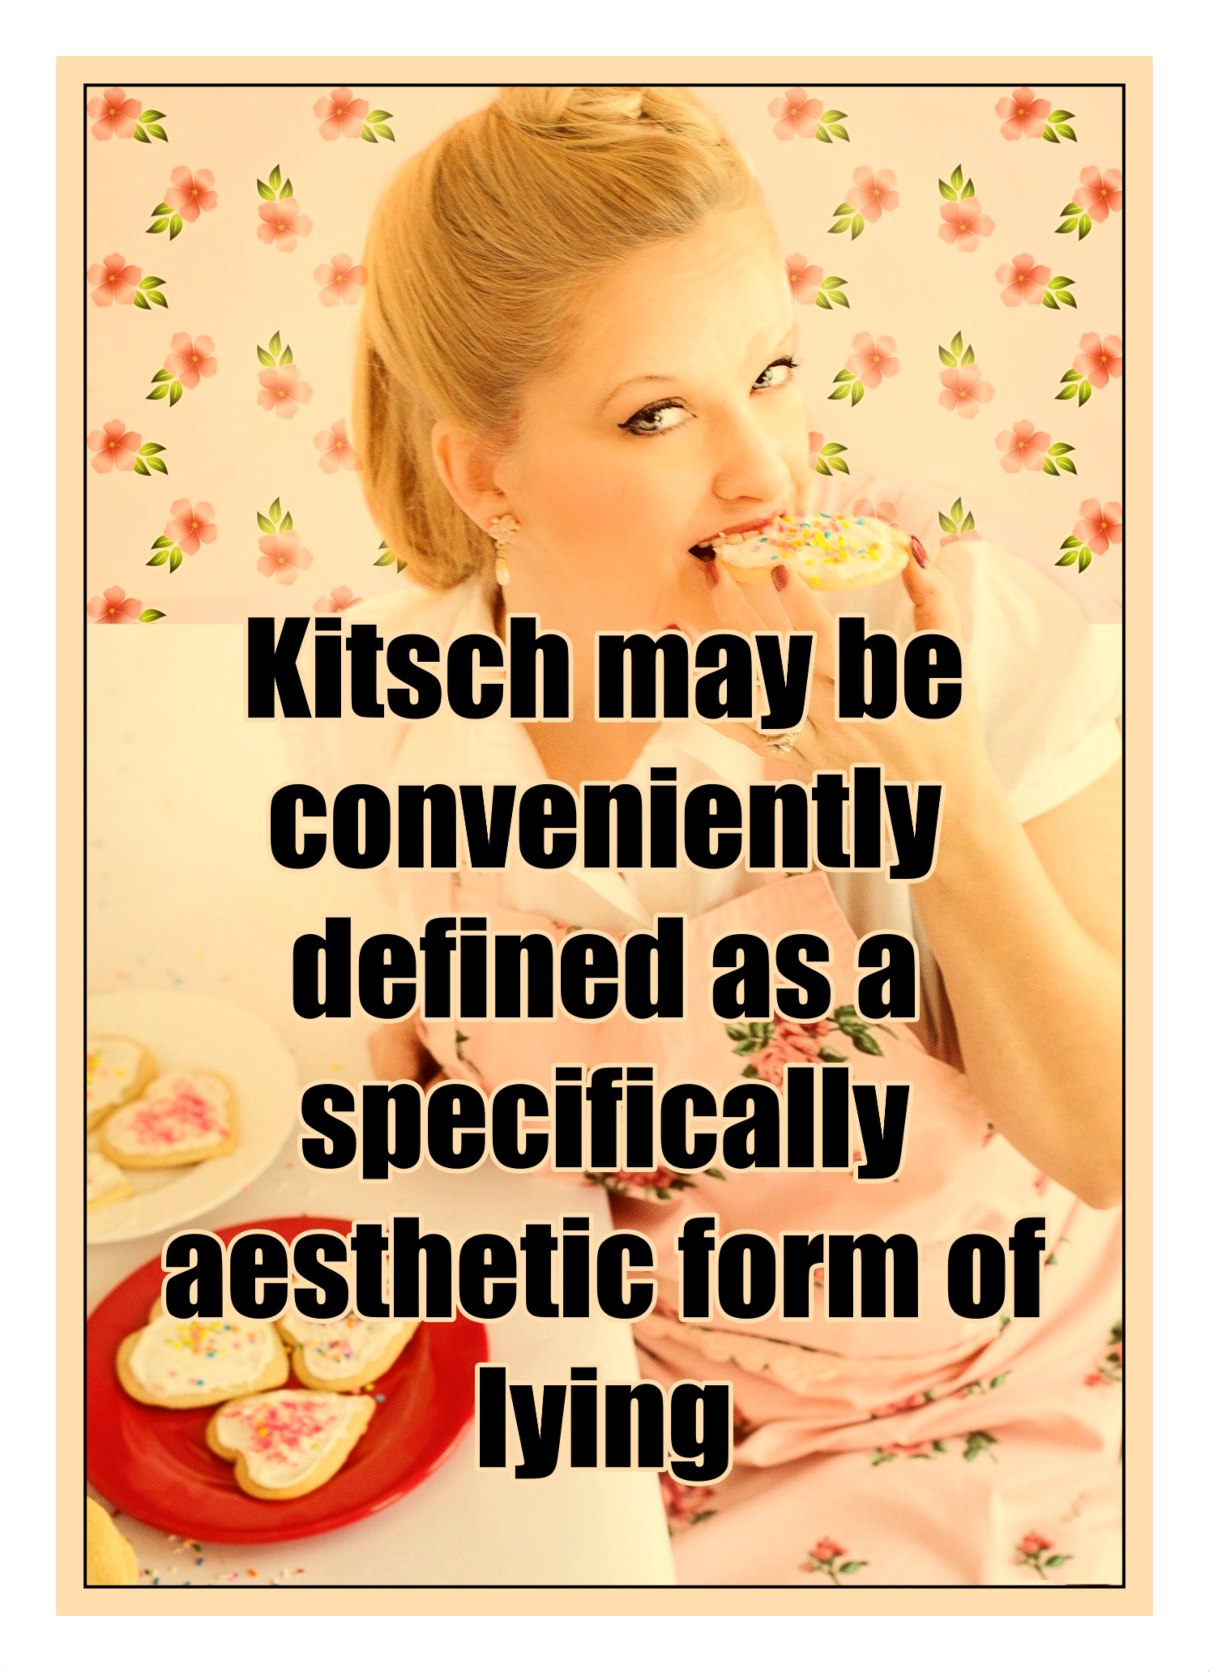 bekitschig.blog Kitsch may be conveniently defined as a specifically aesthetic form of lying. Matei Călinescu